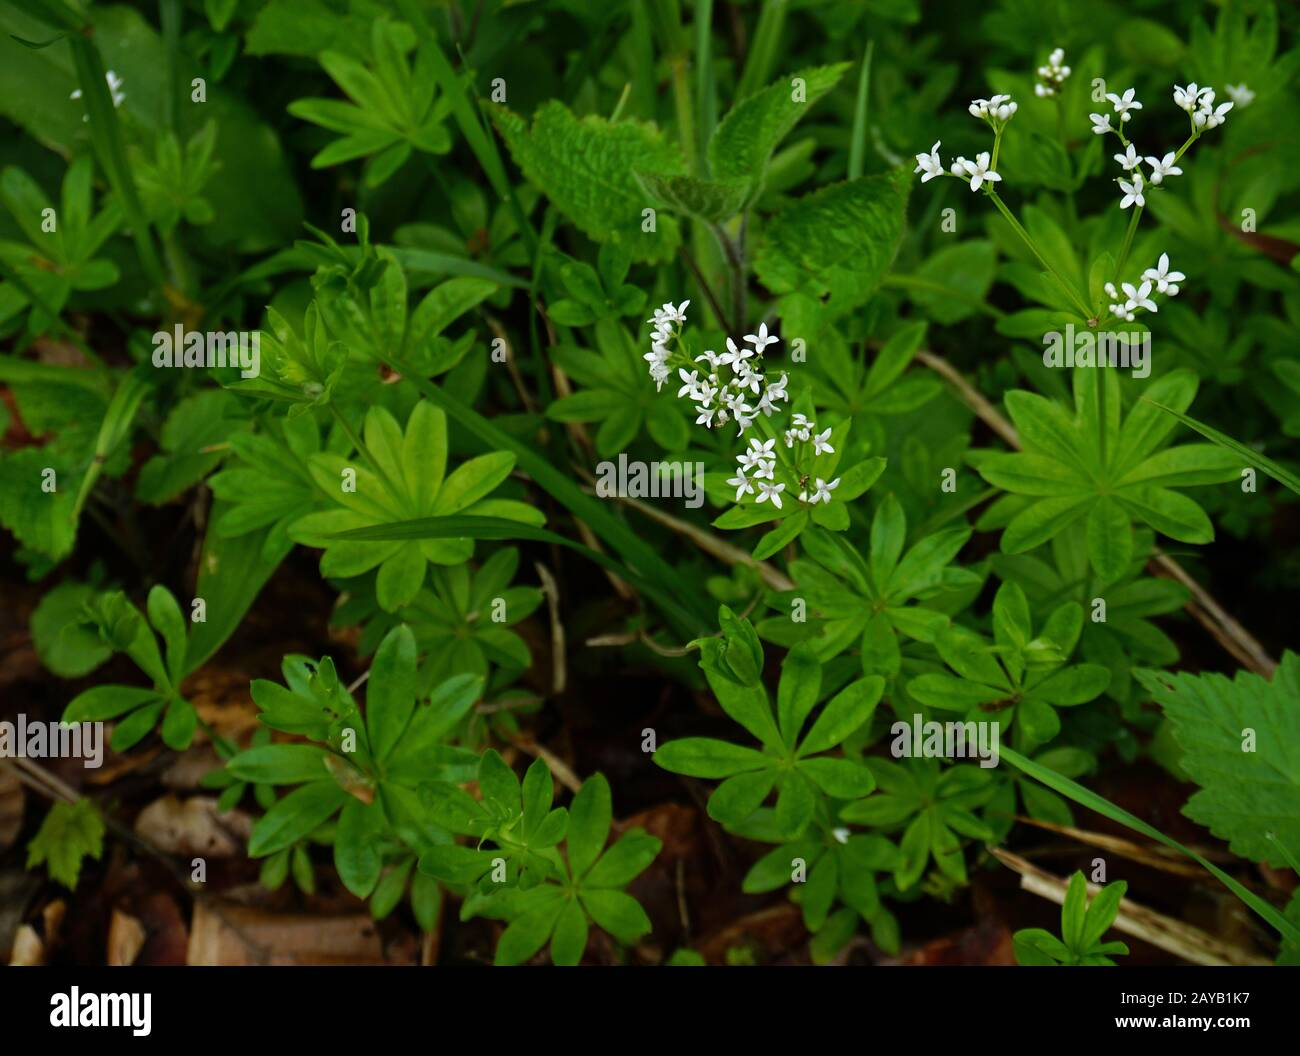 Babys Breath Plant High Resolution Stock Photography And Images Alamy